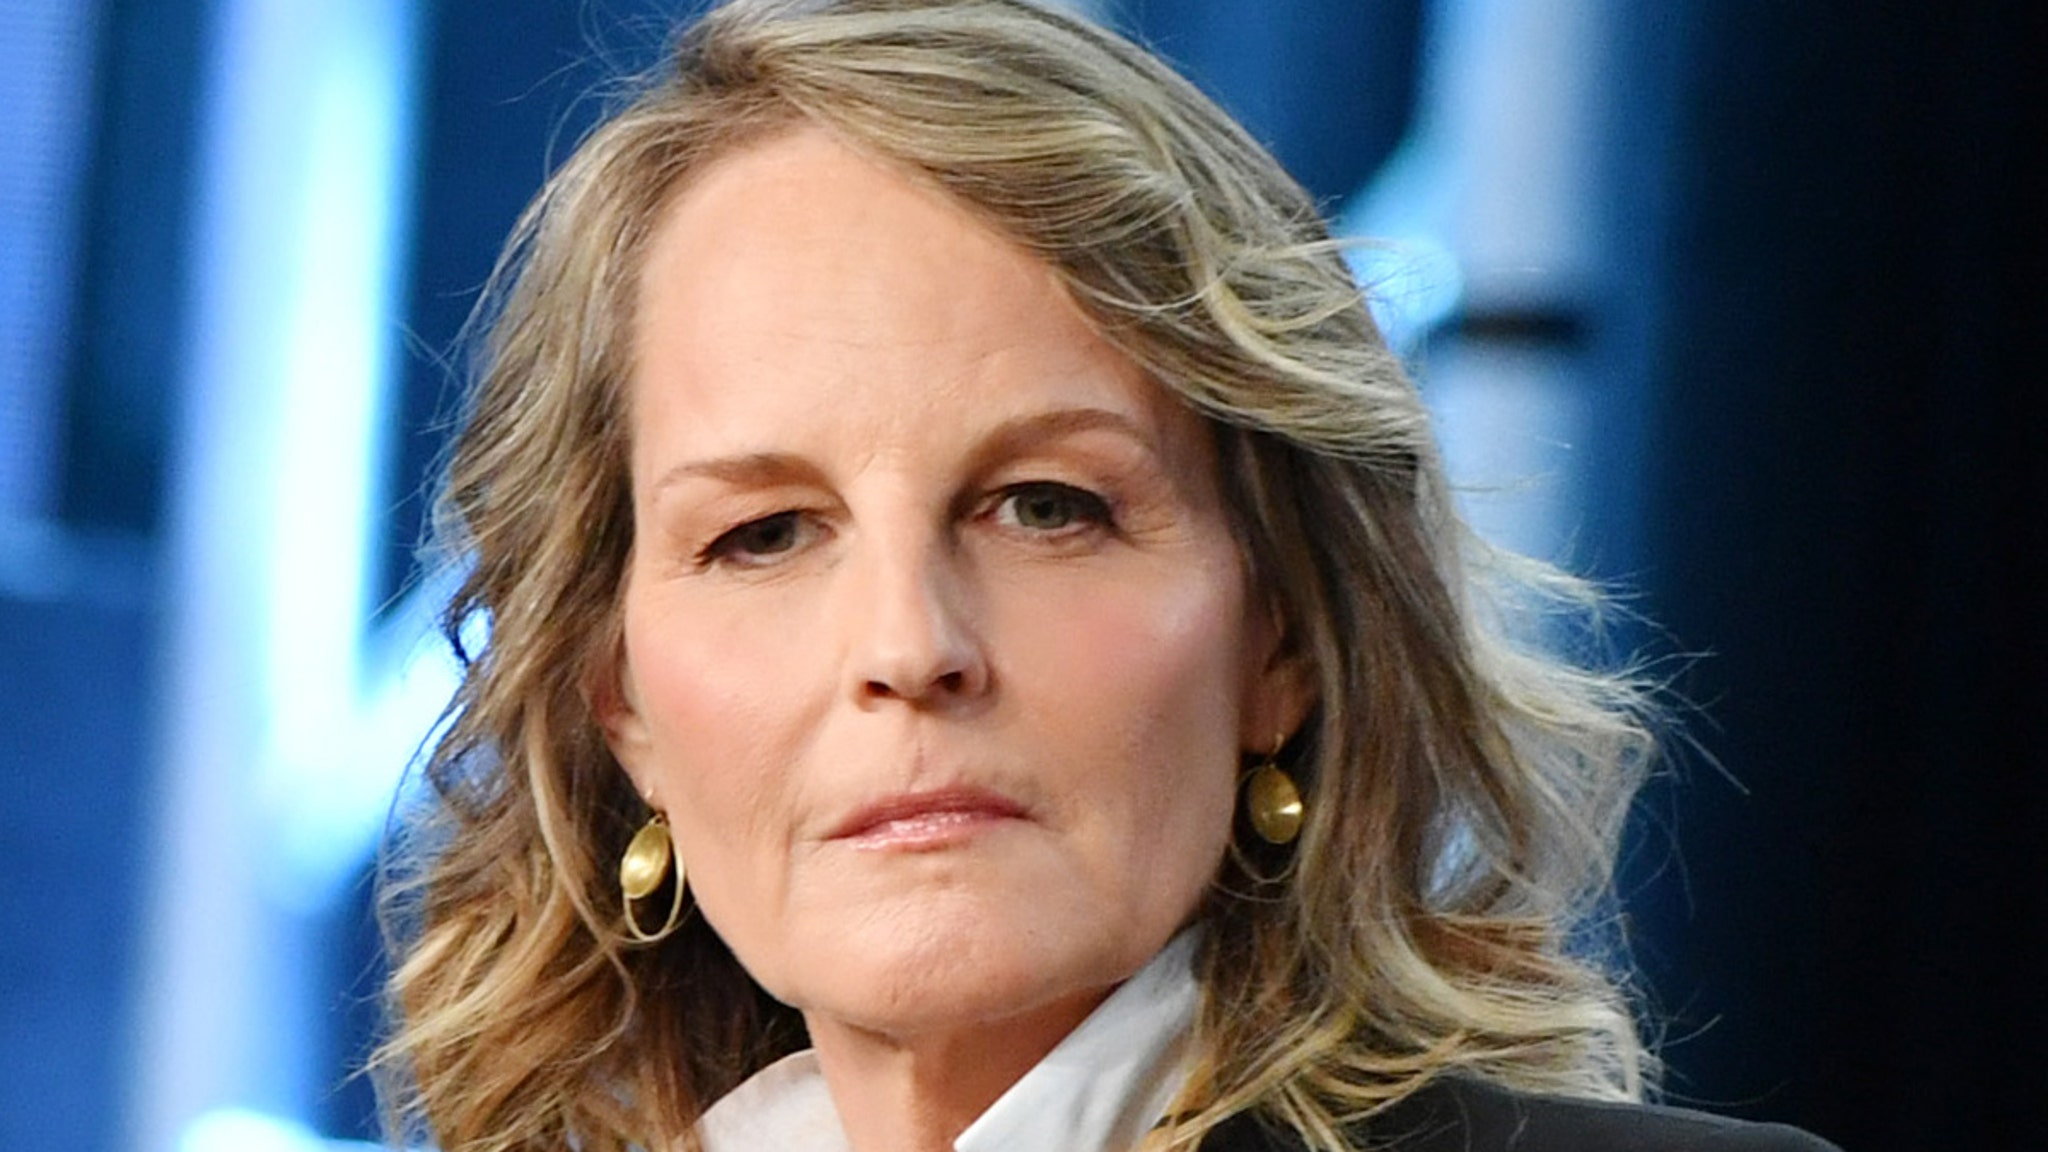 Helen Hunt Sues L.A. Limo Company After Crash Hospitalized Her thumbnail